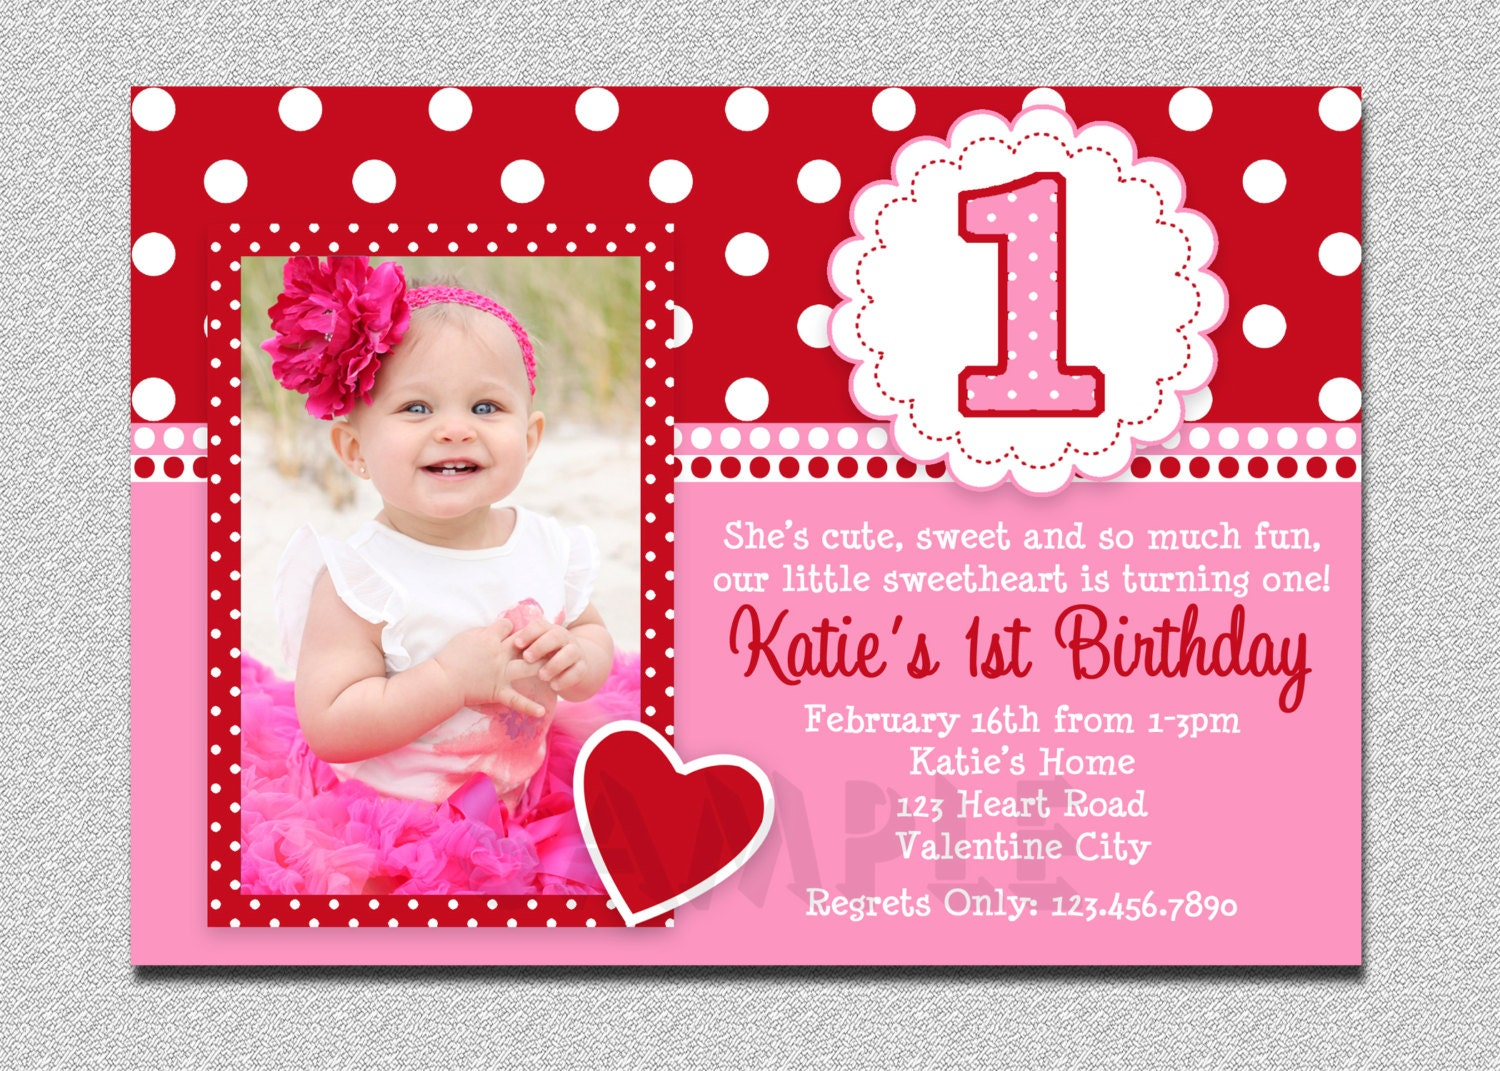 Valentines Birthday Invitation 1st Birthday Valentines – First Birthday Invitation Samples